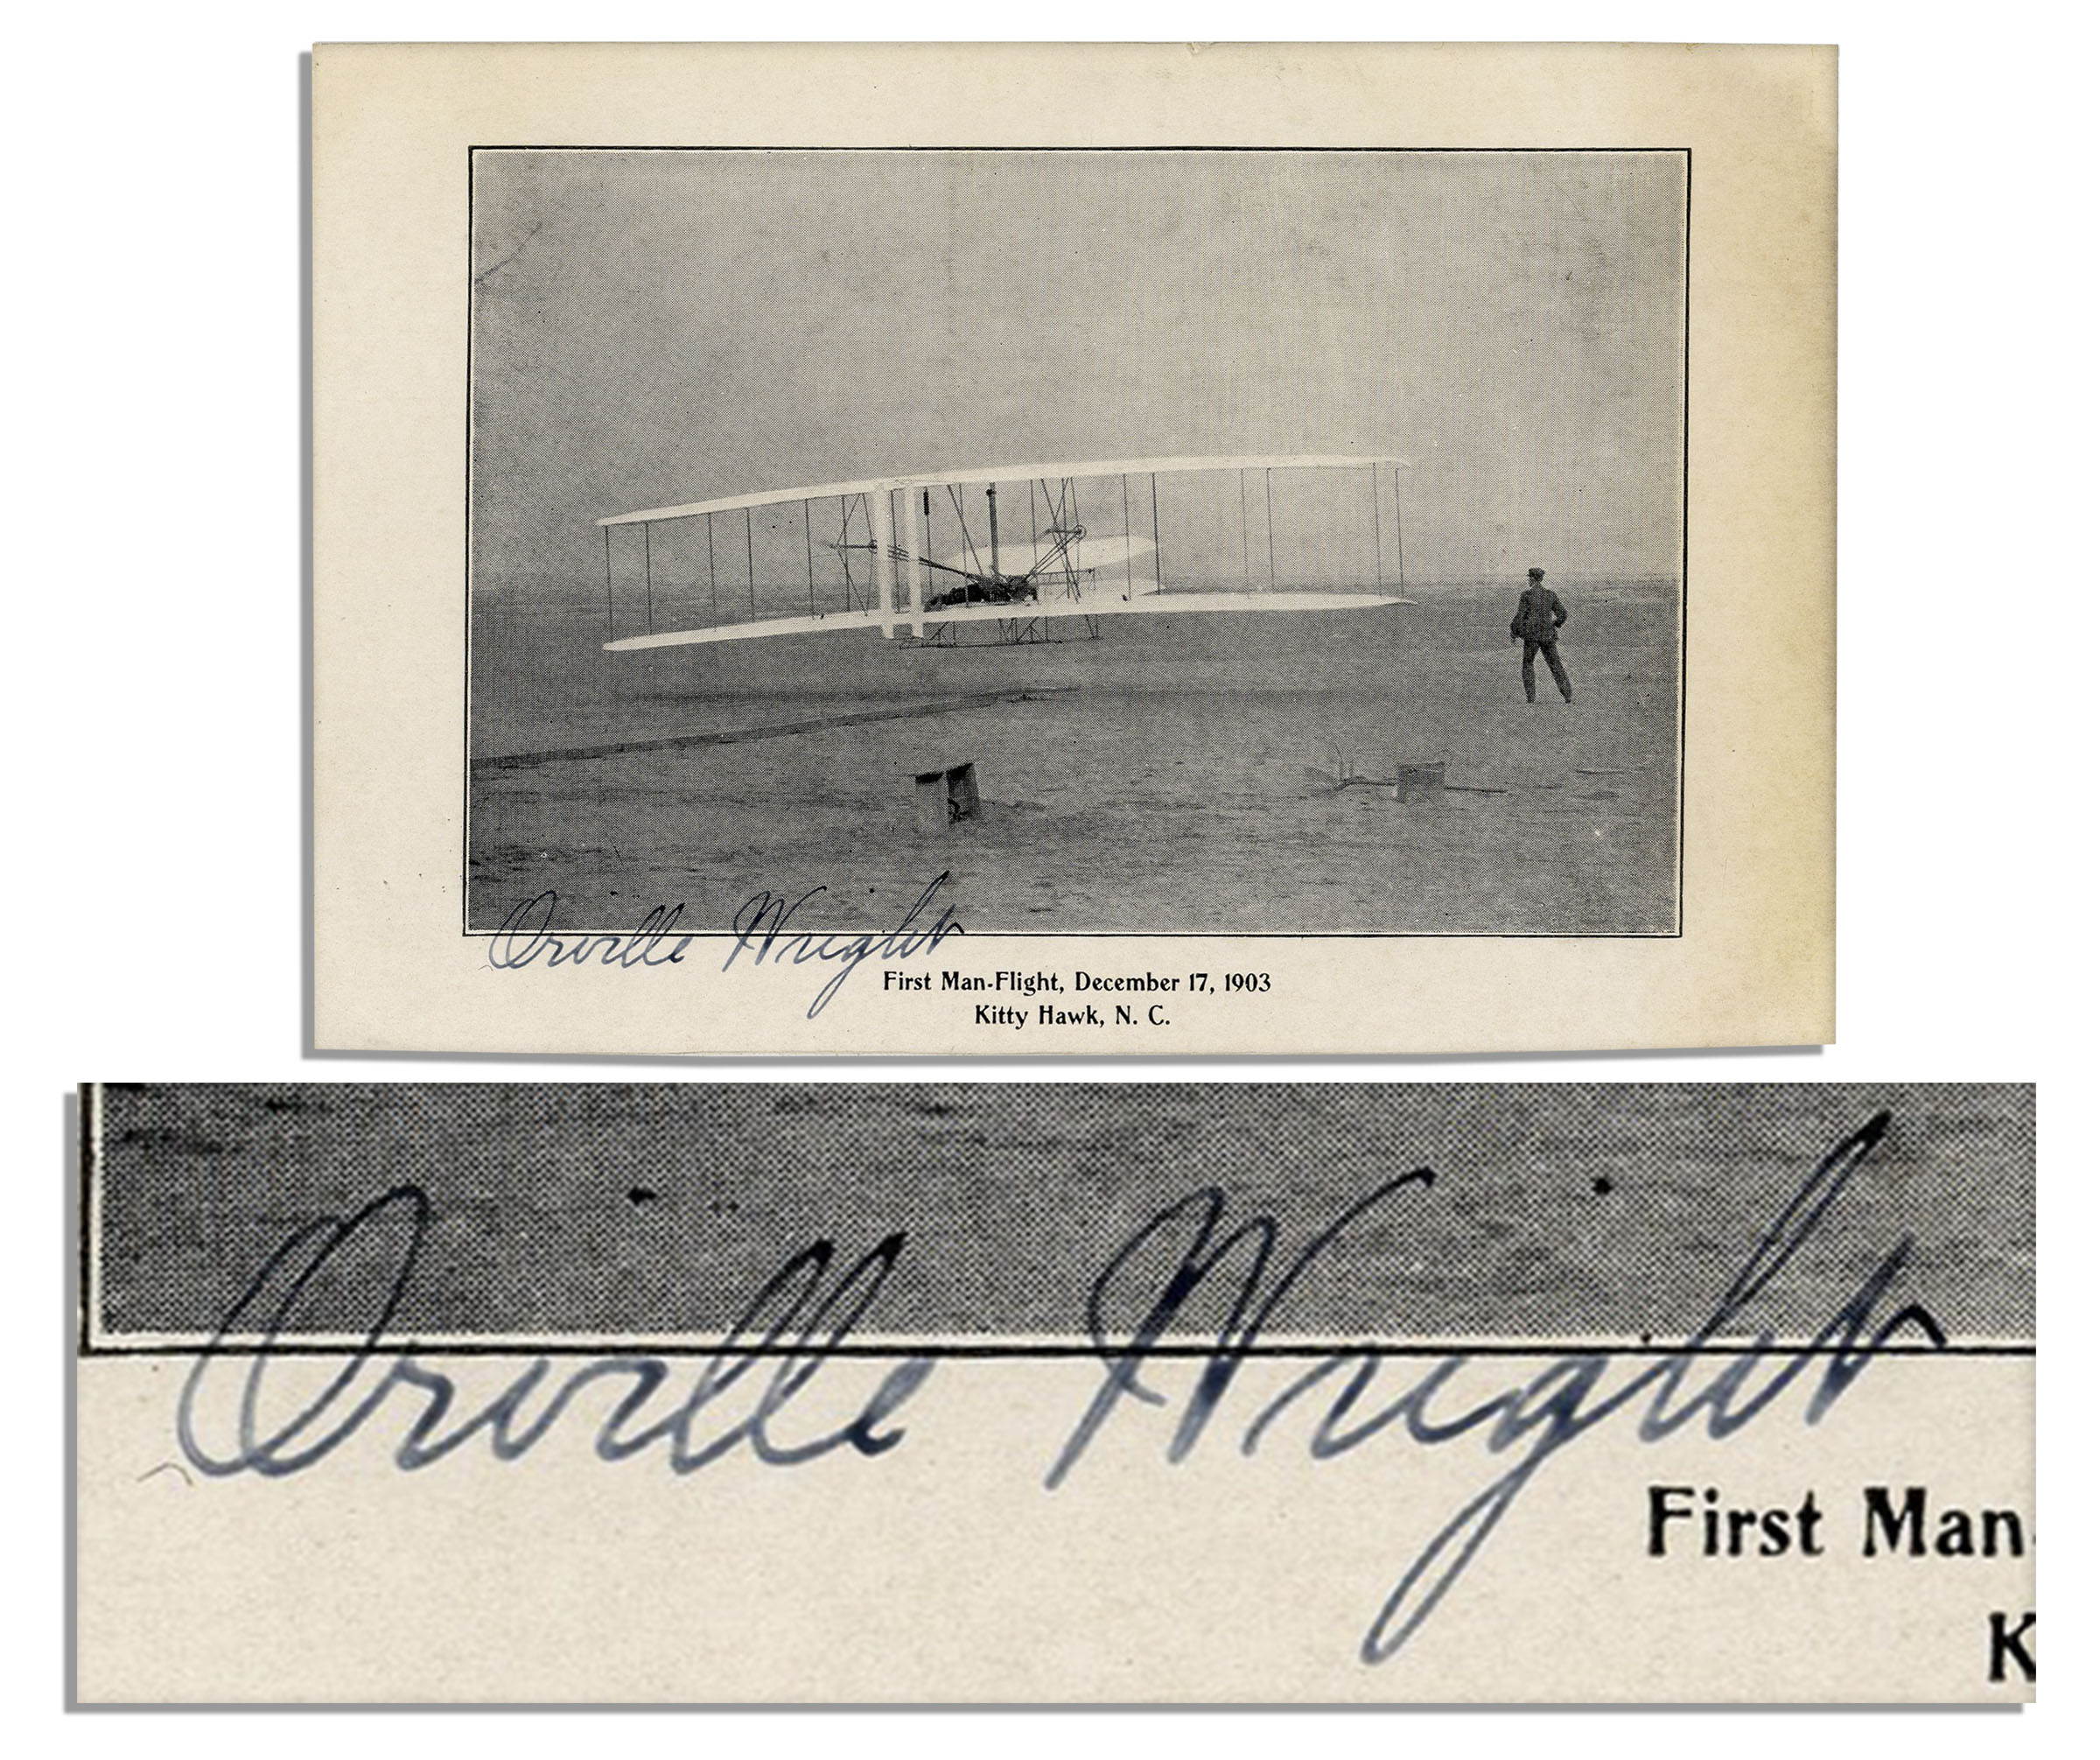 First Wright Brothers Flight within lot detail - orville wright signed photo of the wright brothers